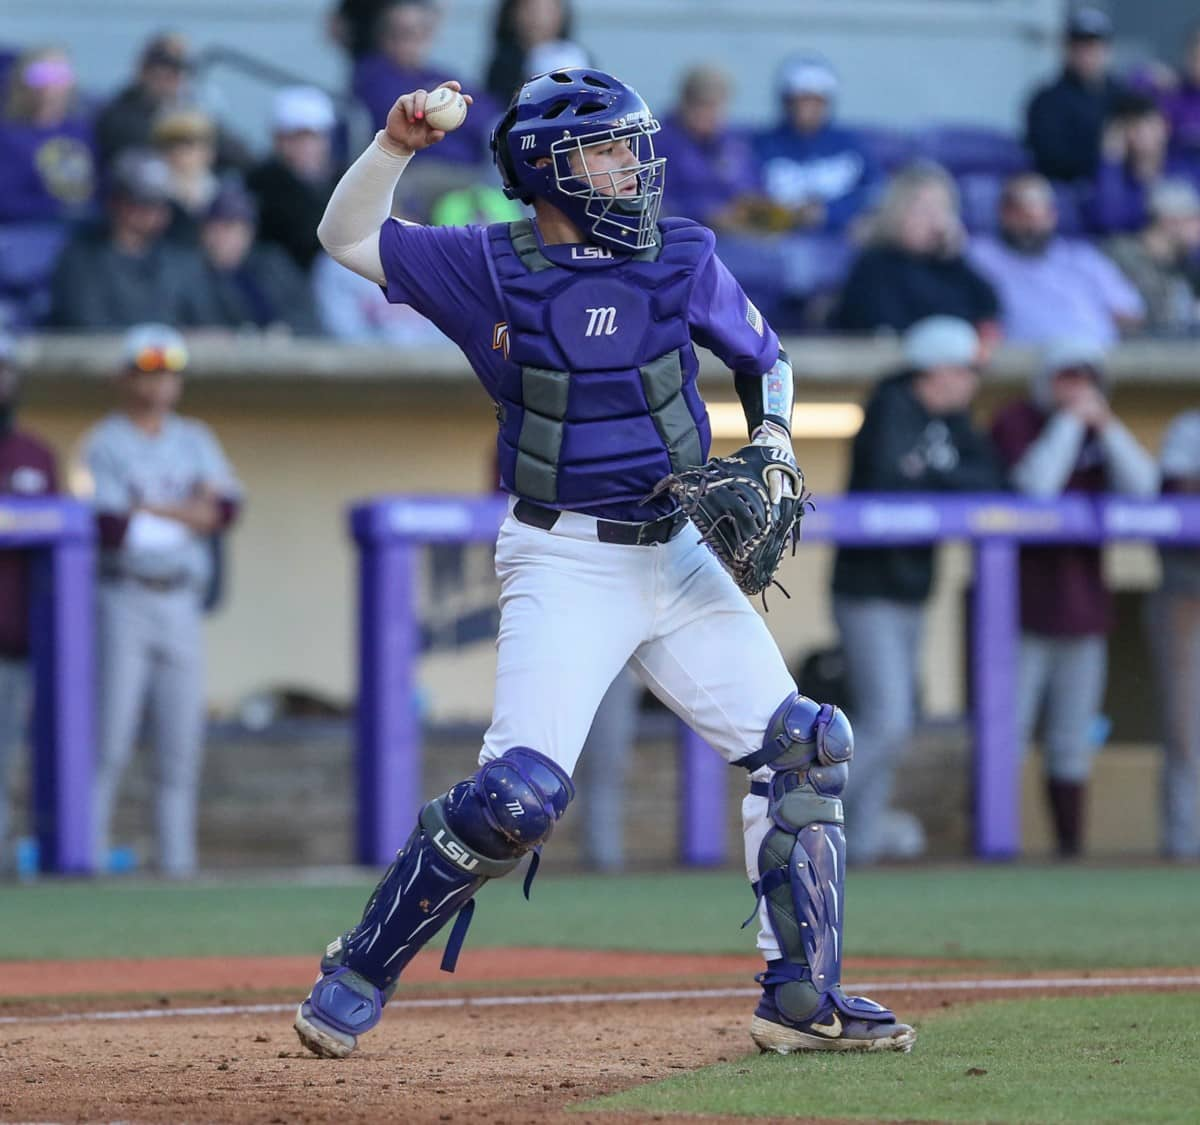 LSU catcher, catcher throwing to pitcher, marucci chest protector and leg guards, LSU catcher wearing Marucci catcher's gear